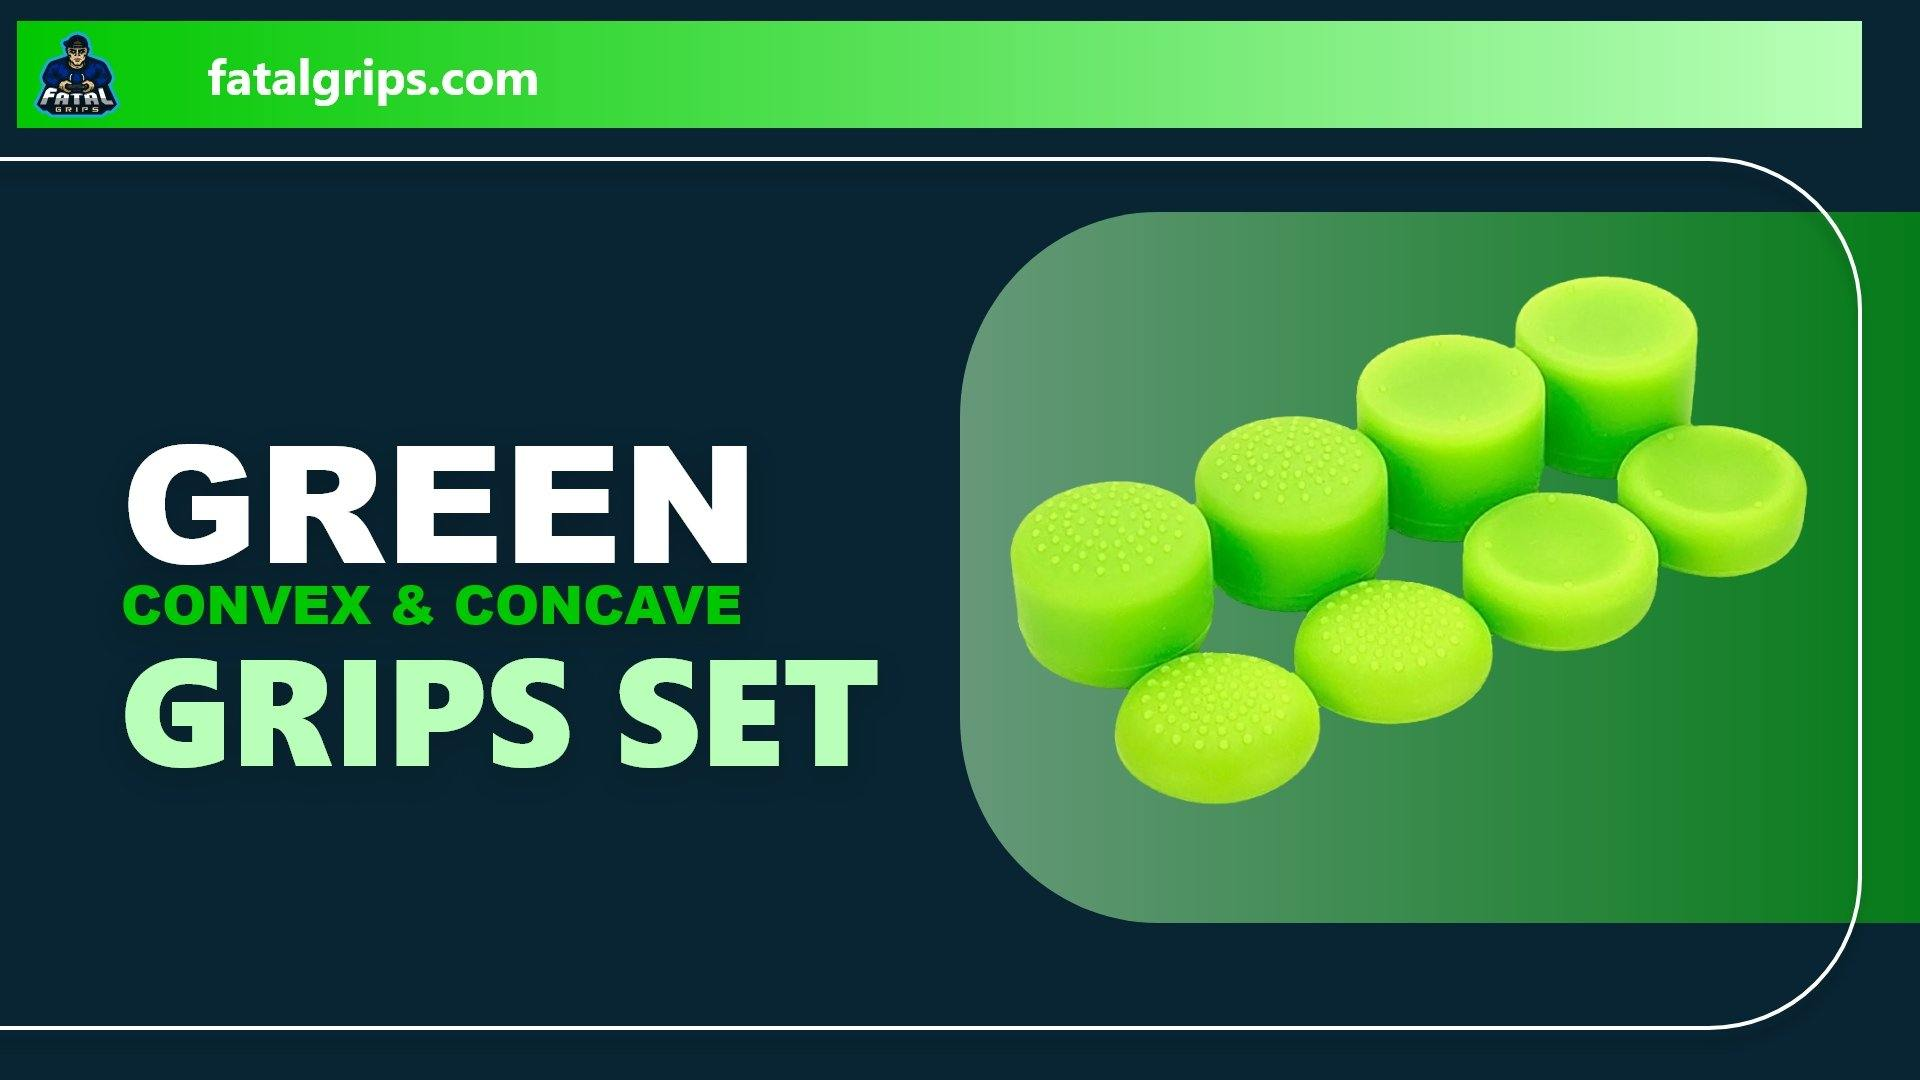 Green Convex & Concave Grips Set - Fatal Grips